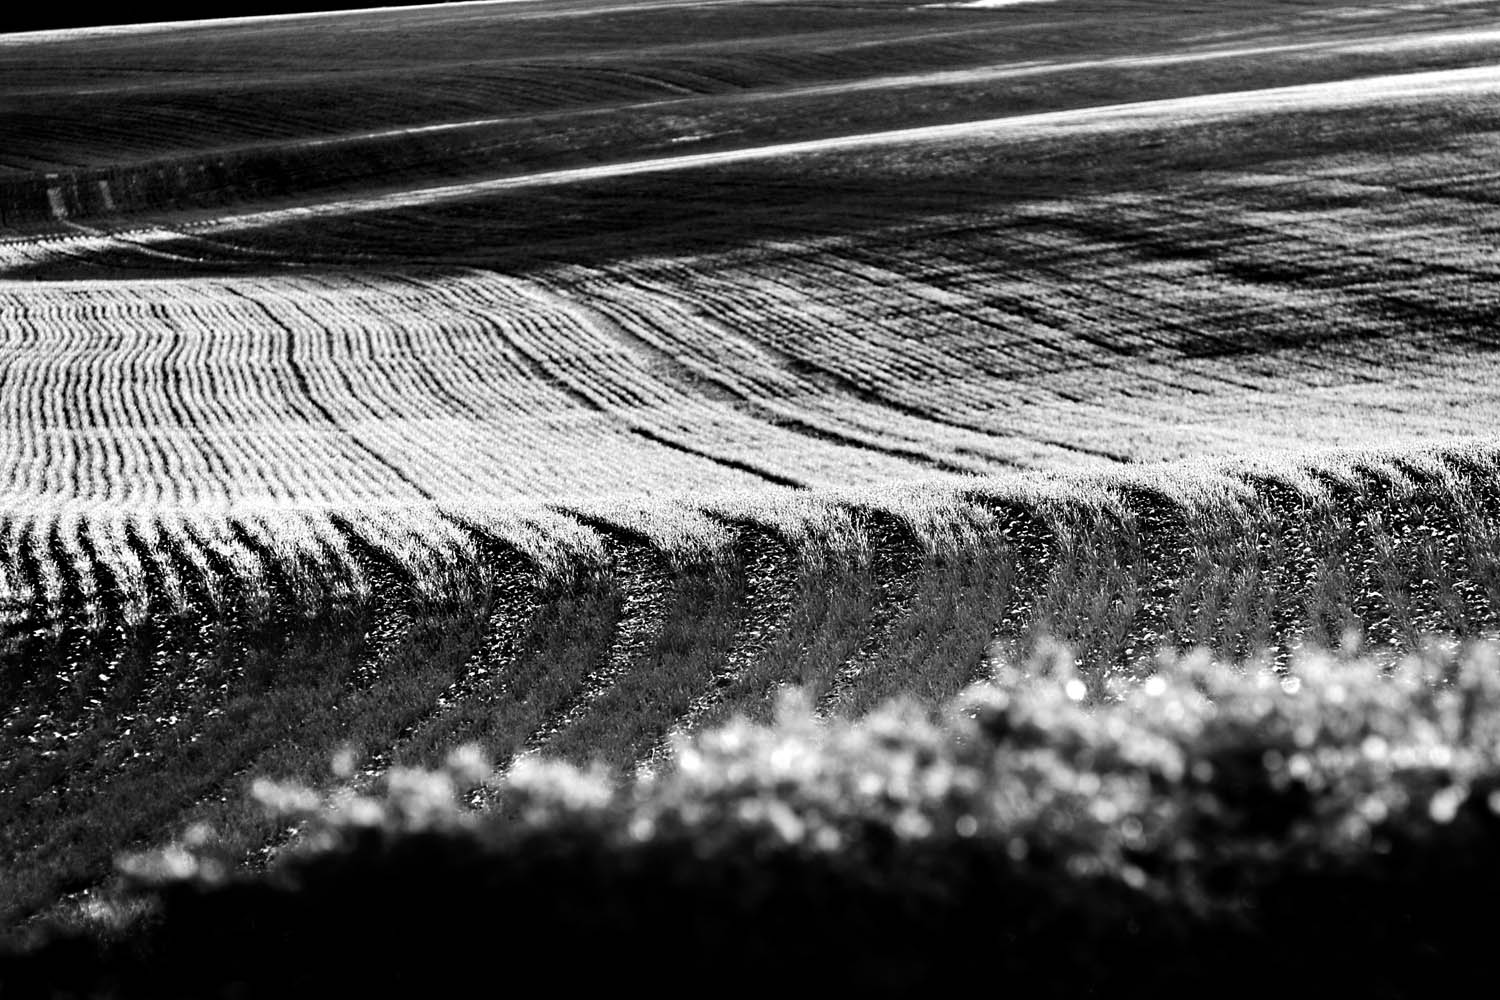 Field Contours, Wiltshire, UK